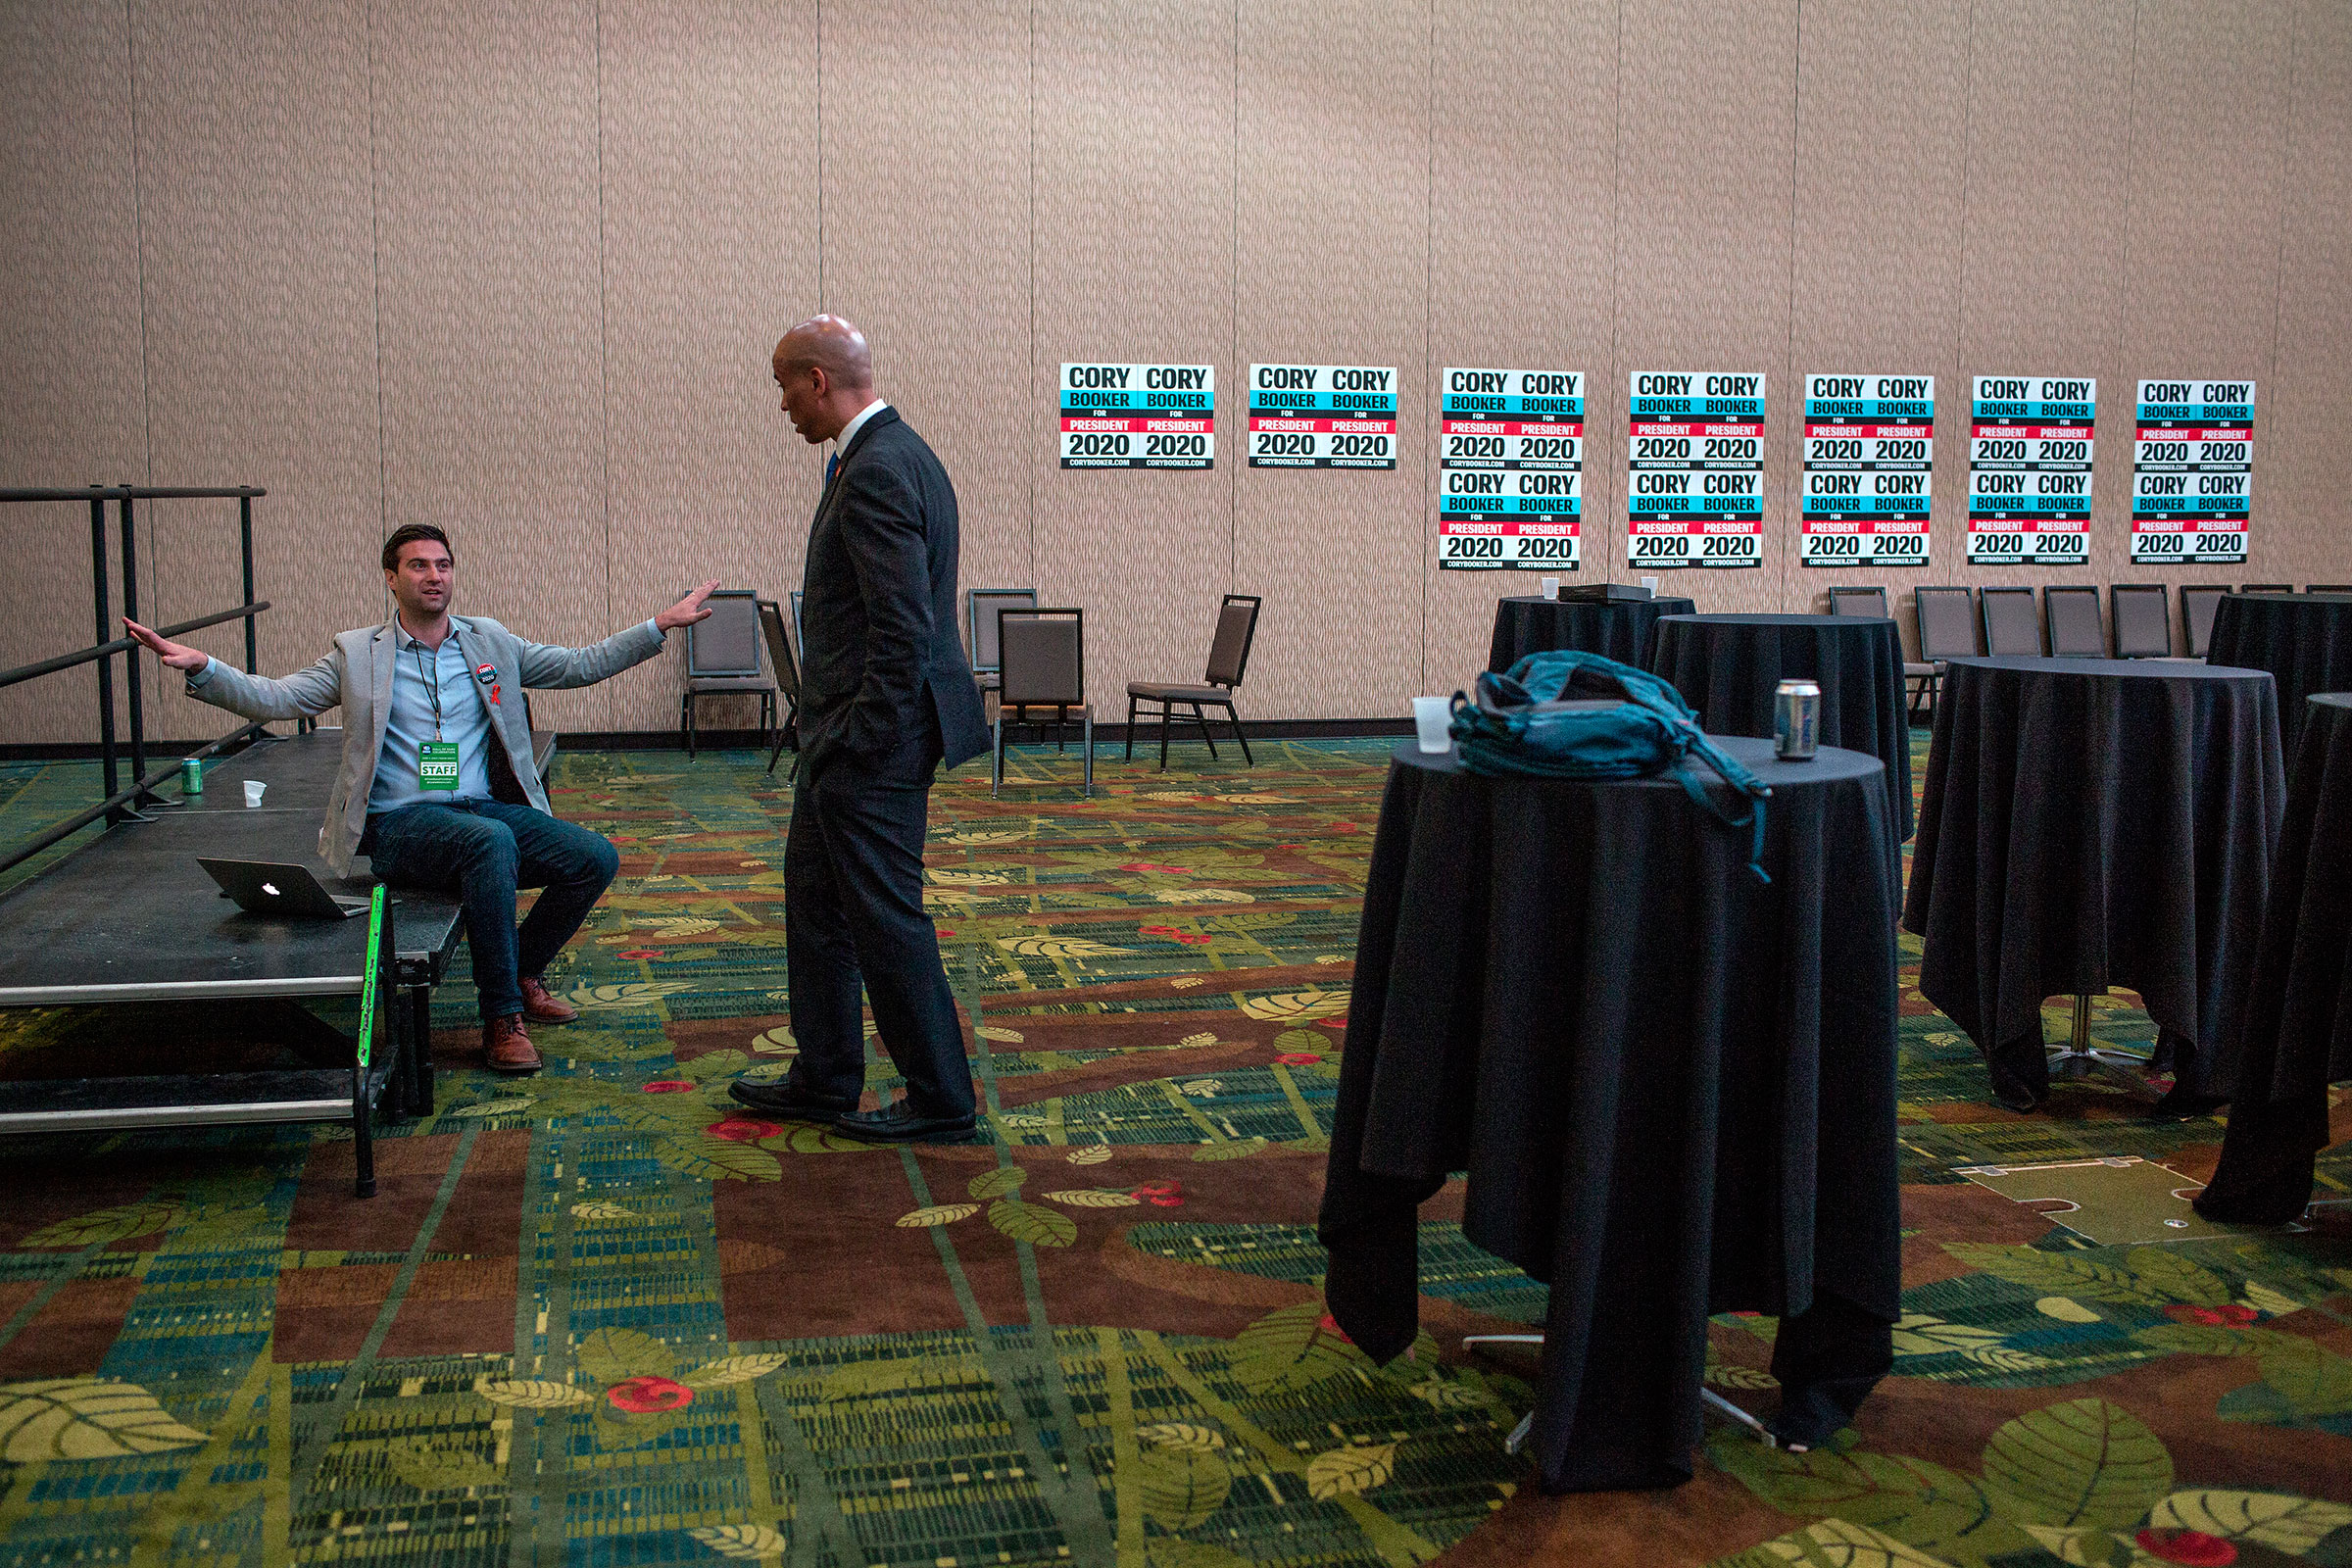 Booker speaks with Iowa State Director Mike Frosolone after a day of campaigning in the Grand Ballroom of the Cedar Rapids Double Tree Convention Complex following the Democratic Hall of Fame event on June, 9.